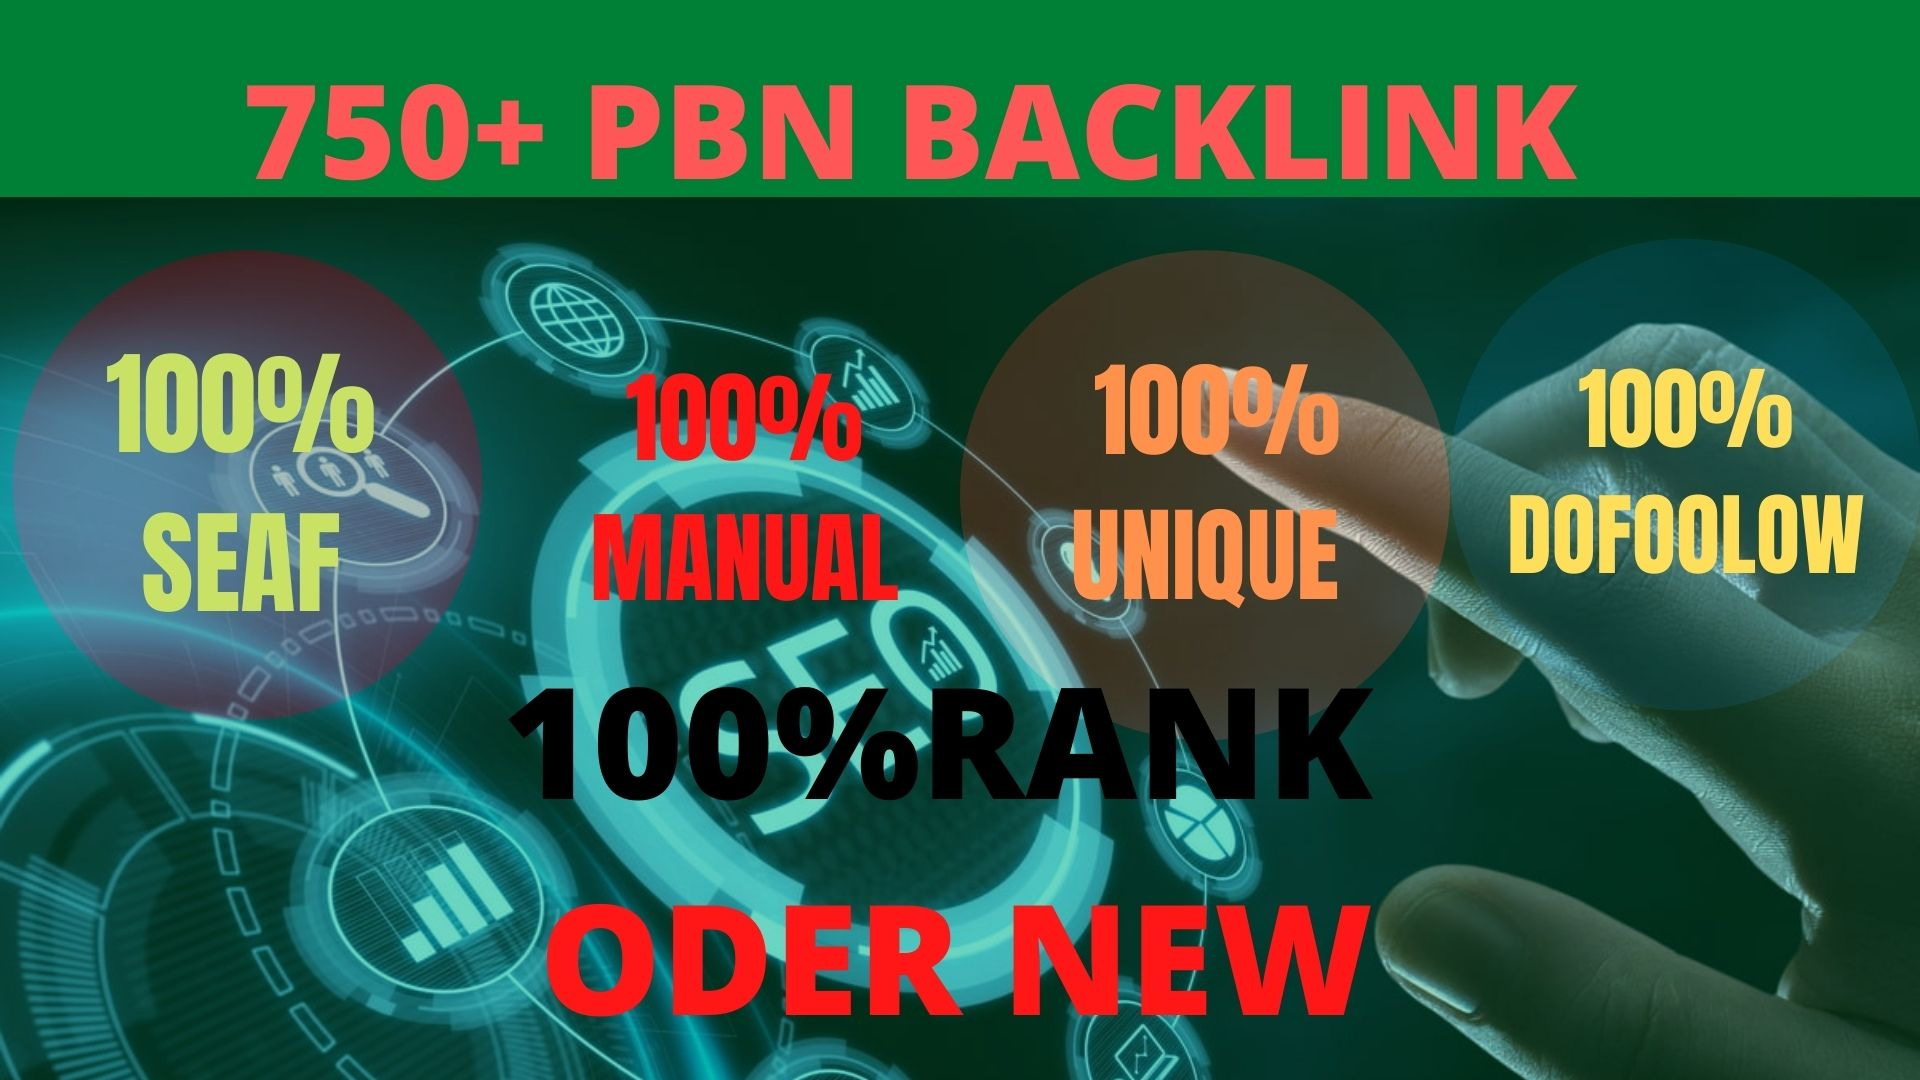 GET 750 + High PBN Backlink Rank your Google site. We give you always a better solution